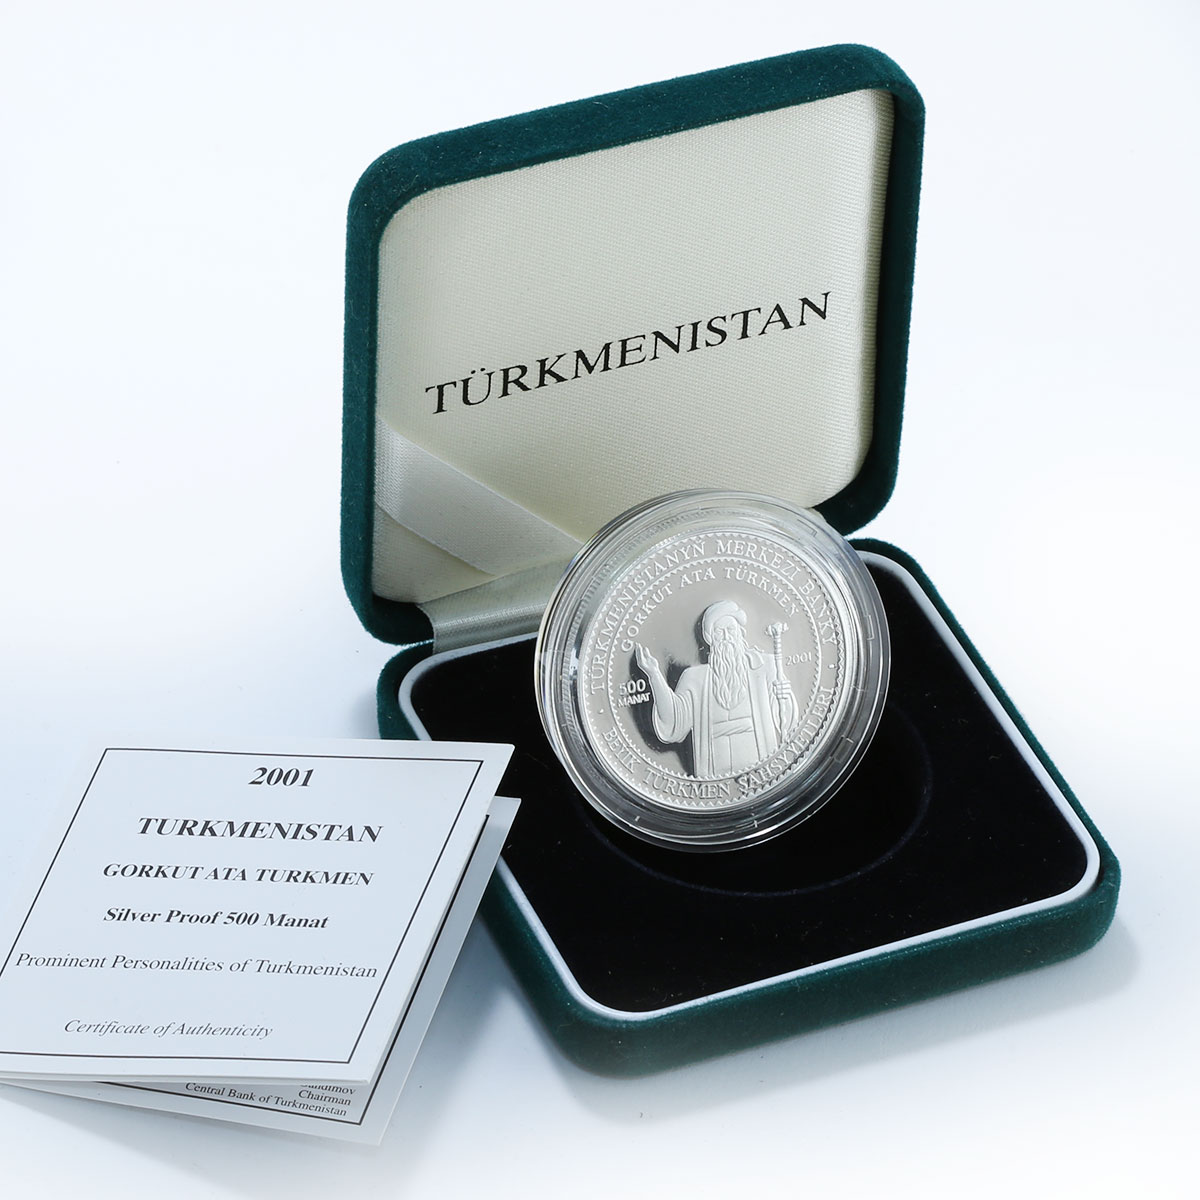 Turkmenistan 500 manat Gorkut poet songwriter and composer silver coin 2001